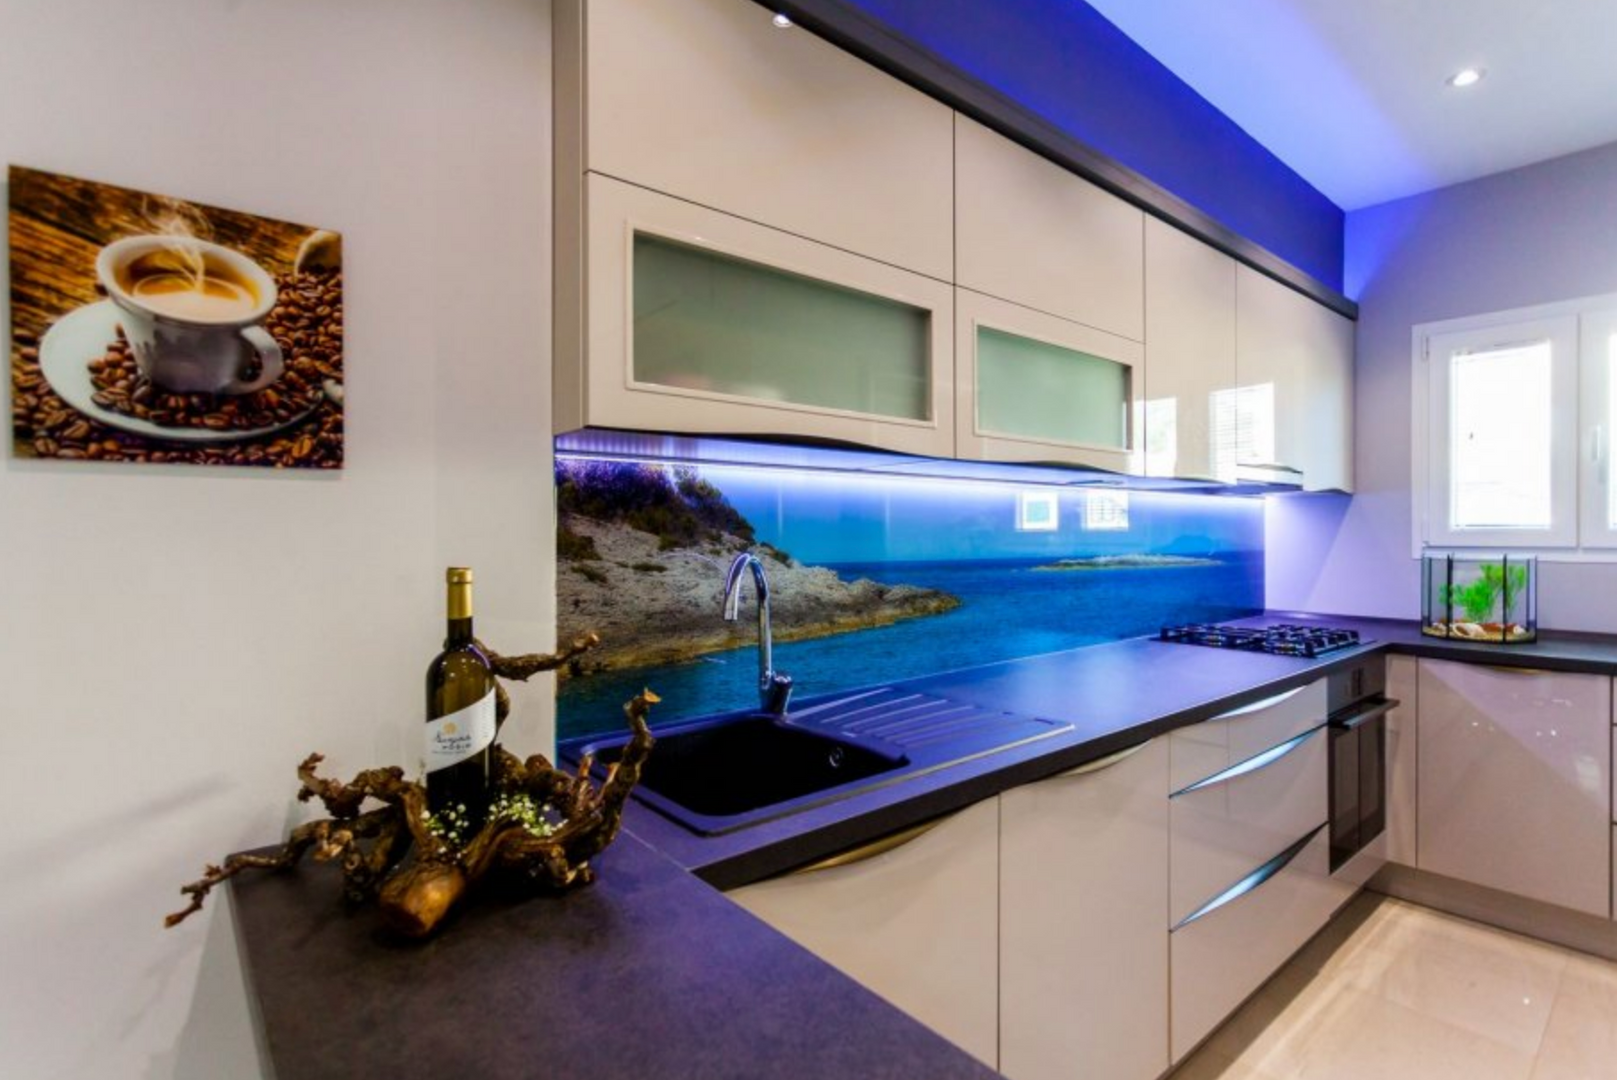 Glass Panel Kitchenocean.png